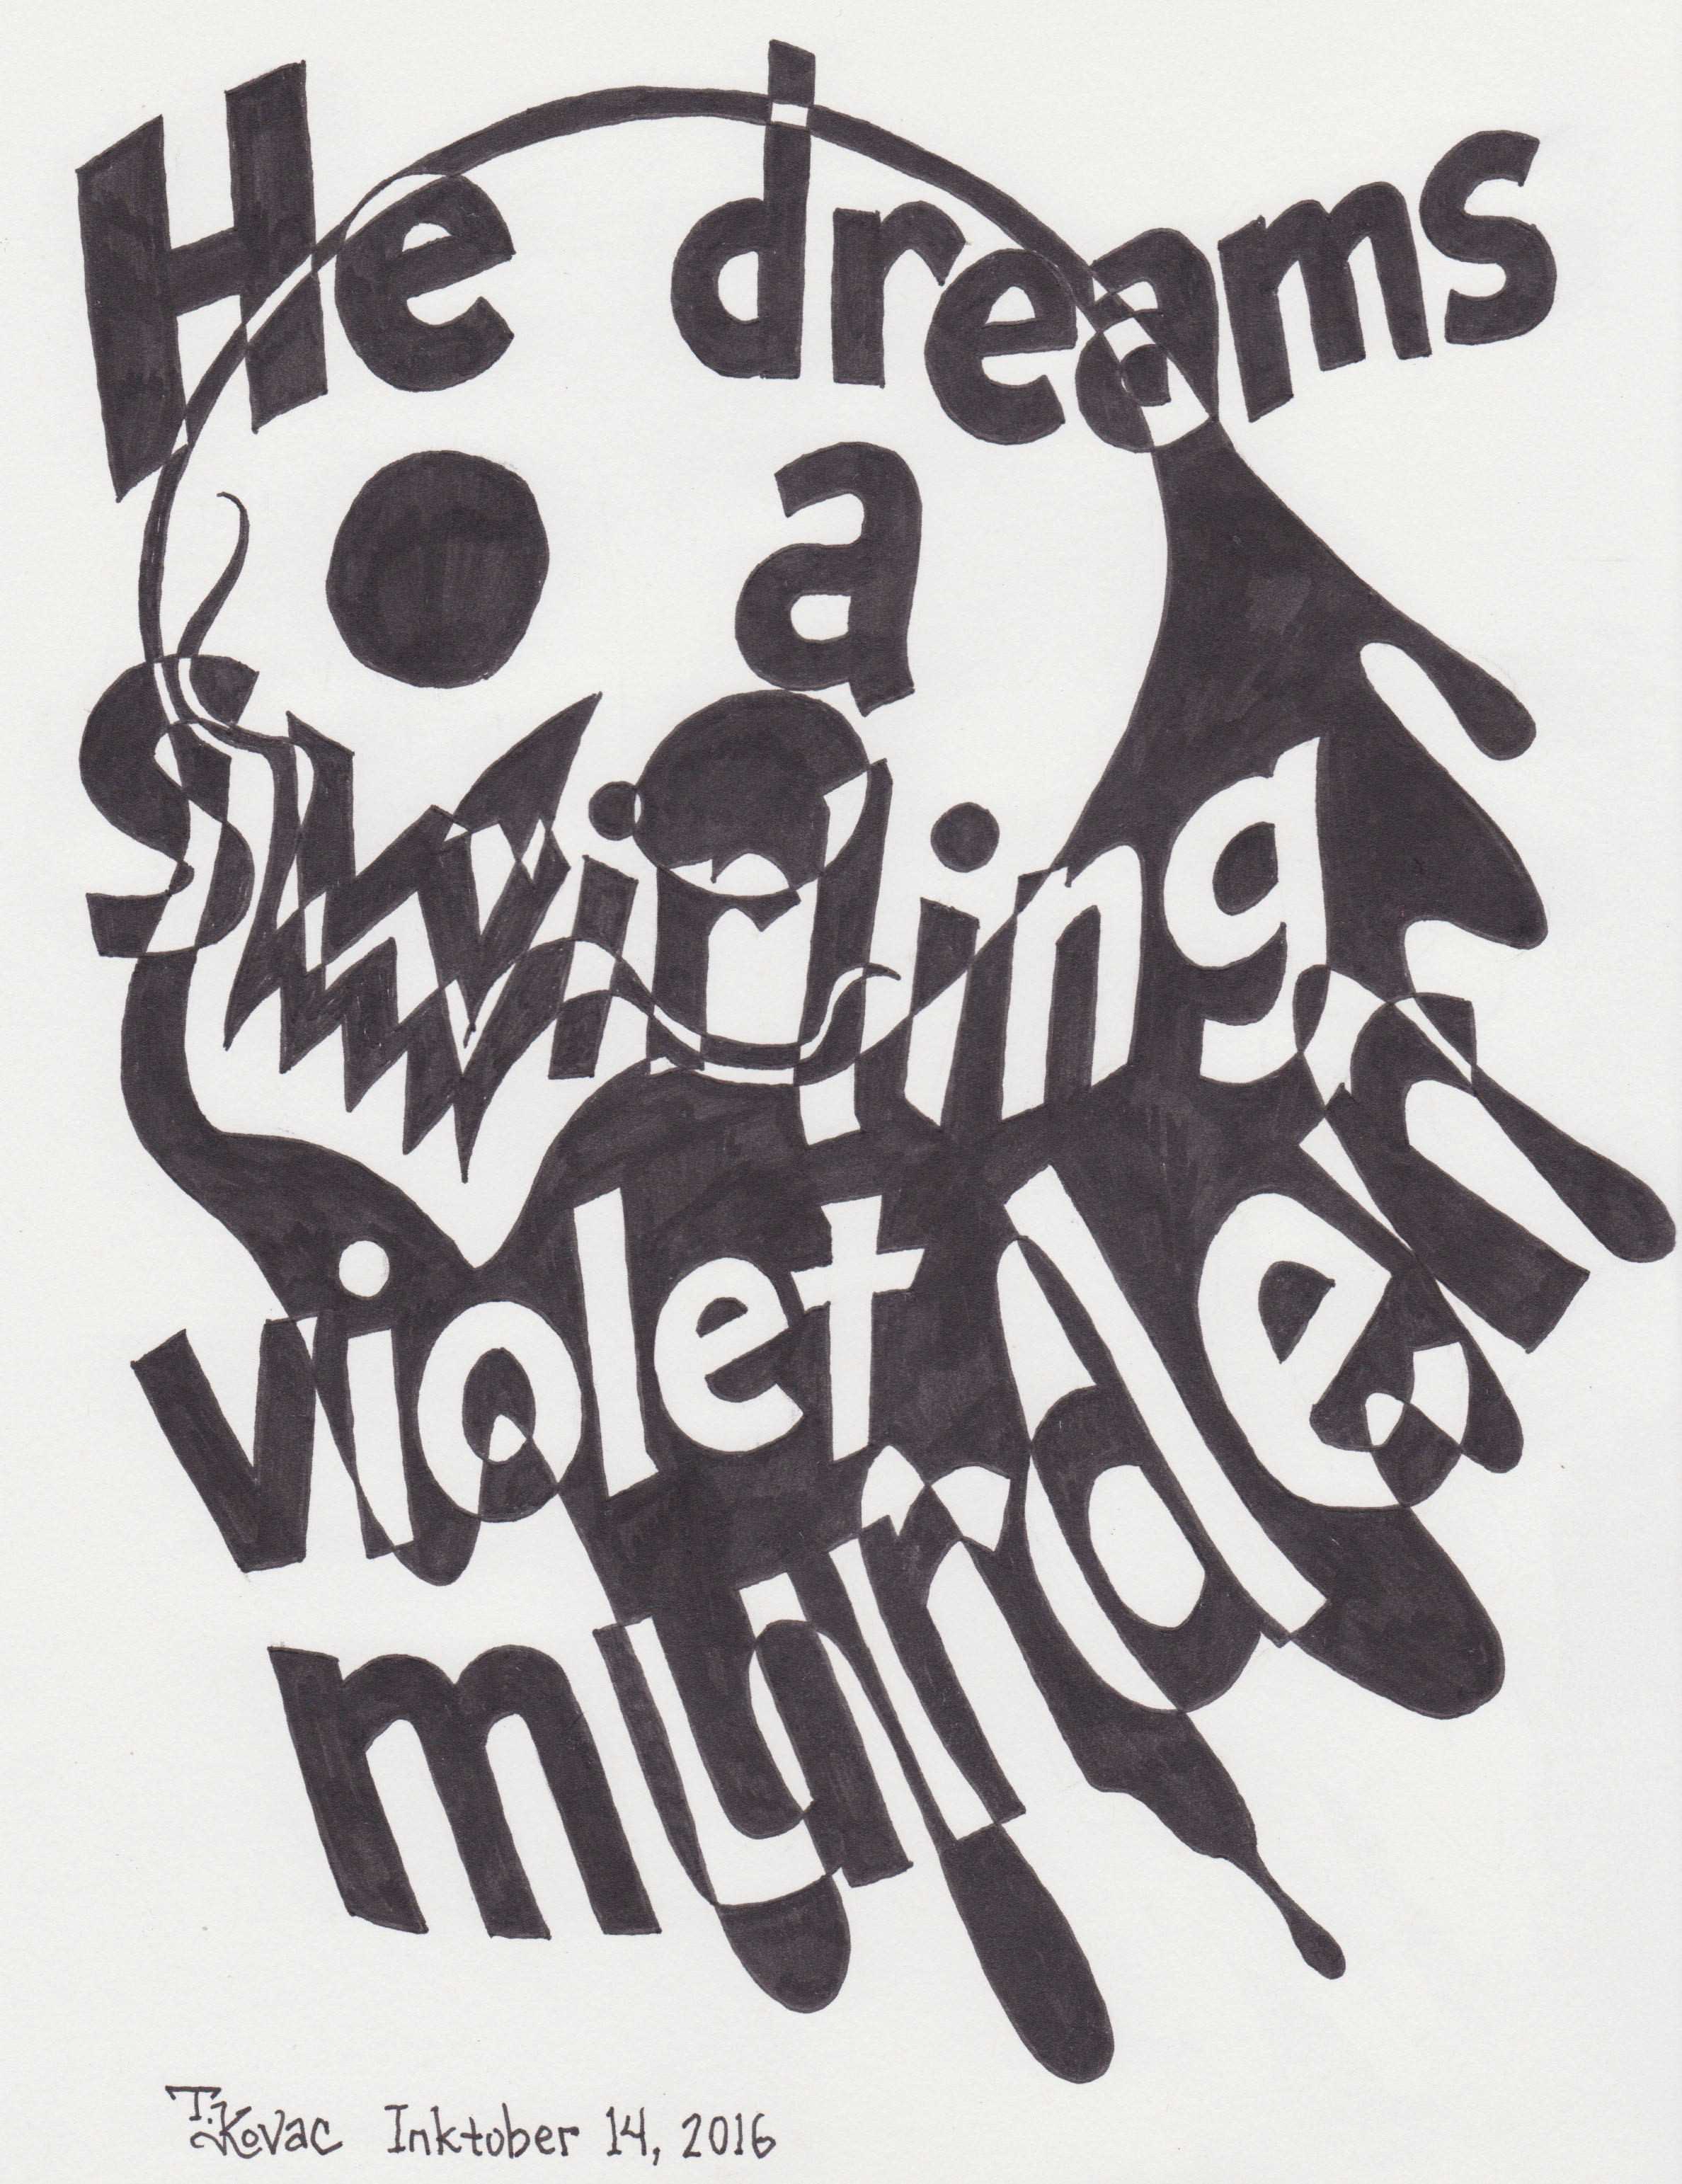 """He dreams a swirling violet murder"""